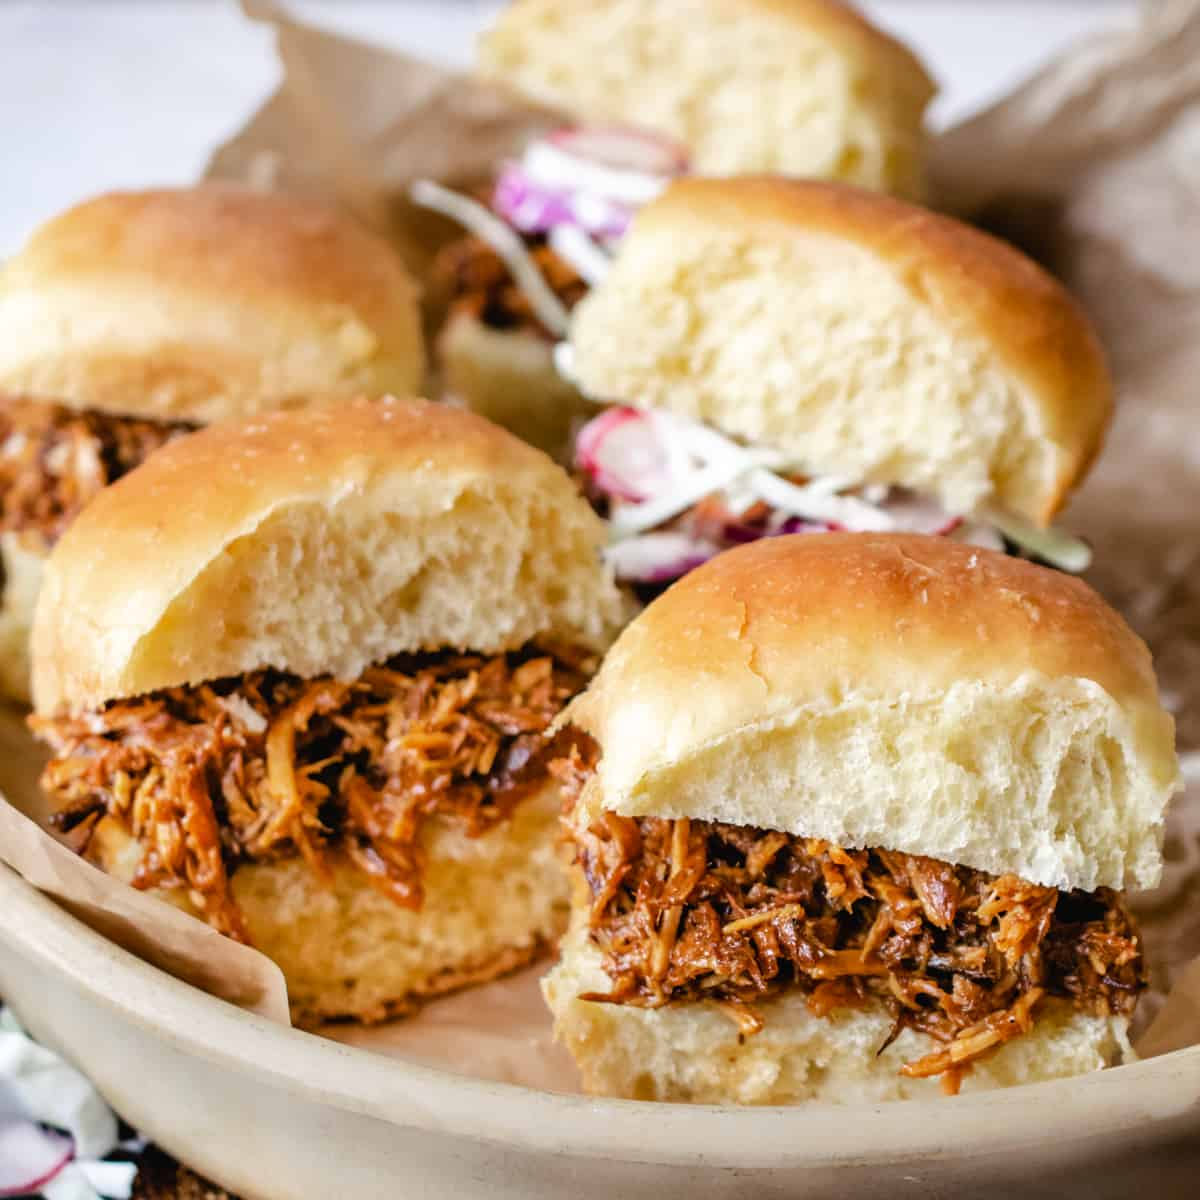 Pulled pork on slider rolls on a stone plate.